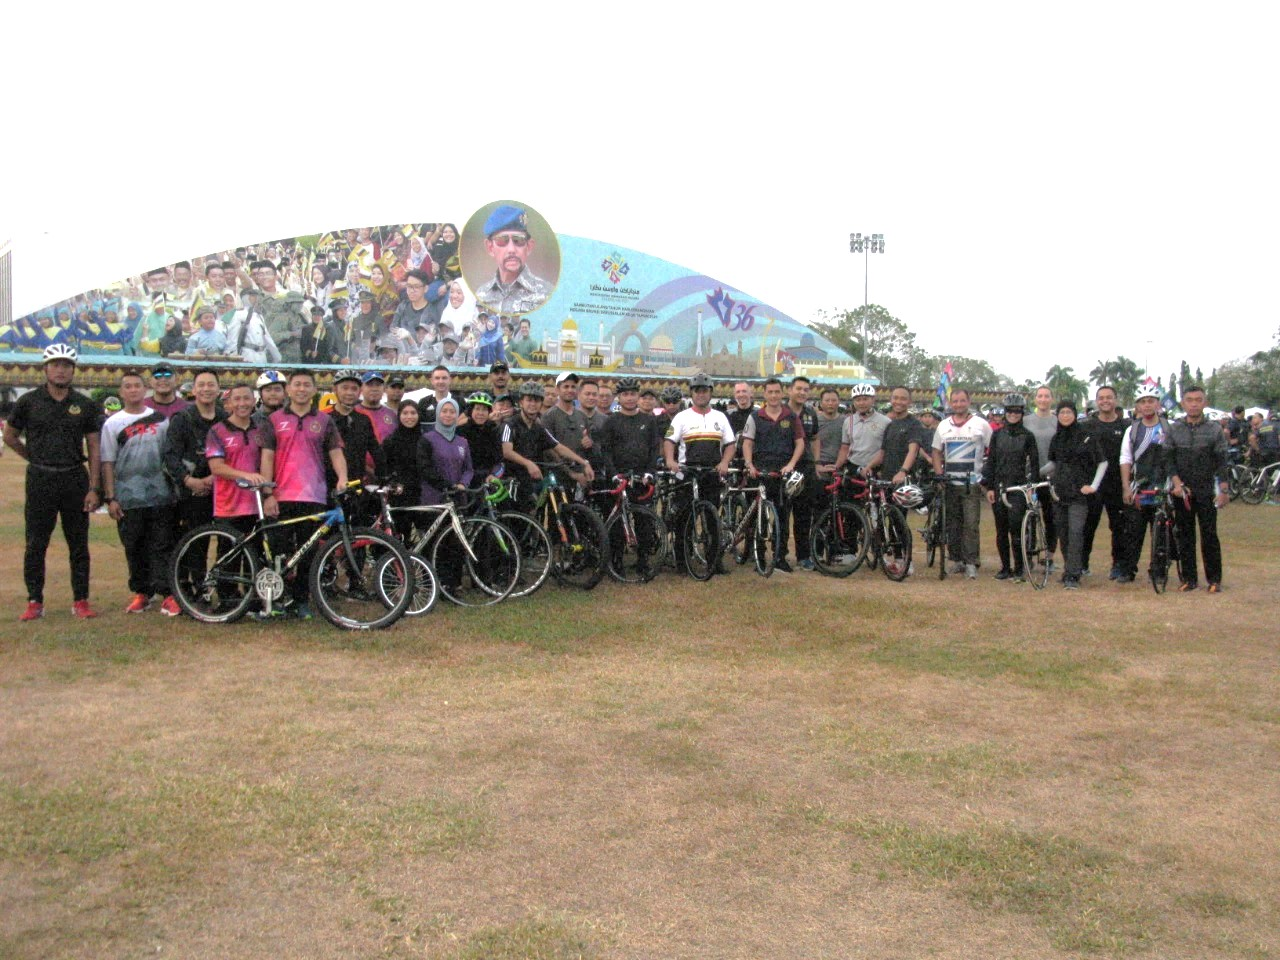 http://www.da.mindef.gov.bn/ArticleImages/ArticleImage/2020/March/Sunday Cycling Event/01.jpg